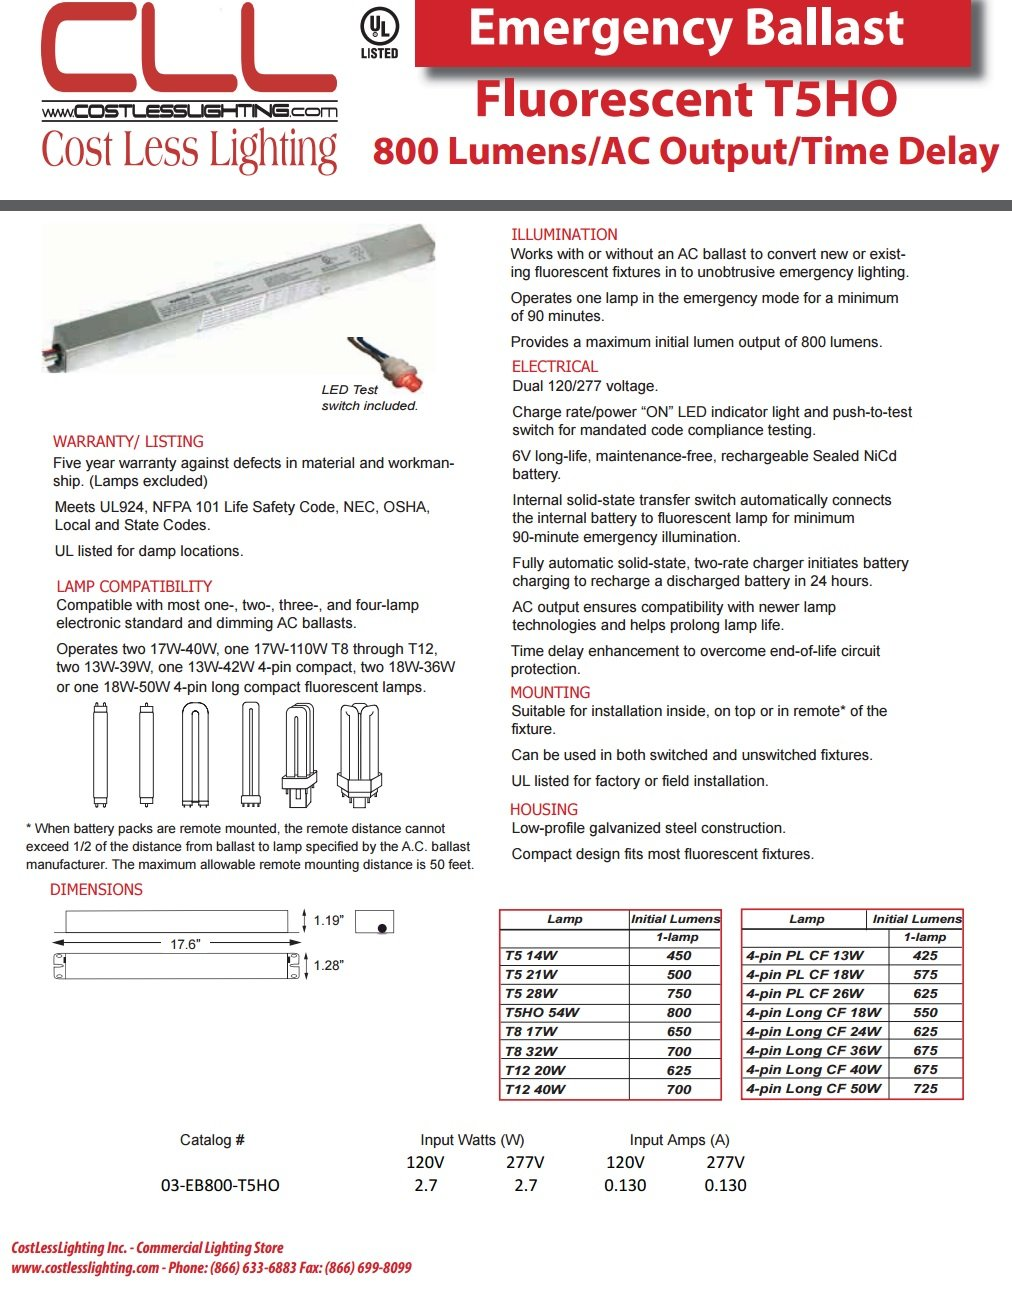 Cost Less Lighting Emergency Ballast 800 Lumen for F54 - T5HO Lamp AC Output Time Delay ''ACTD''